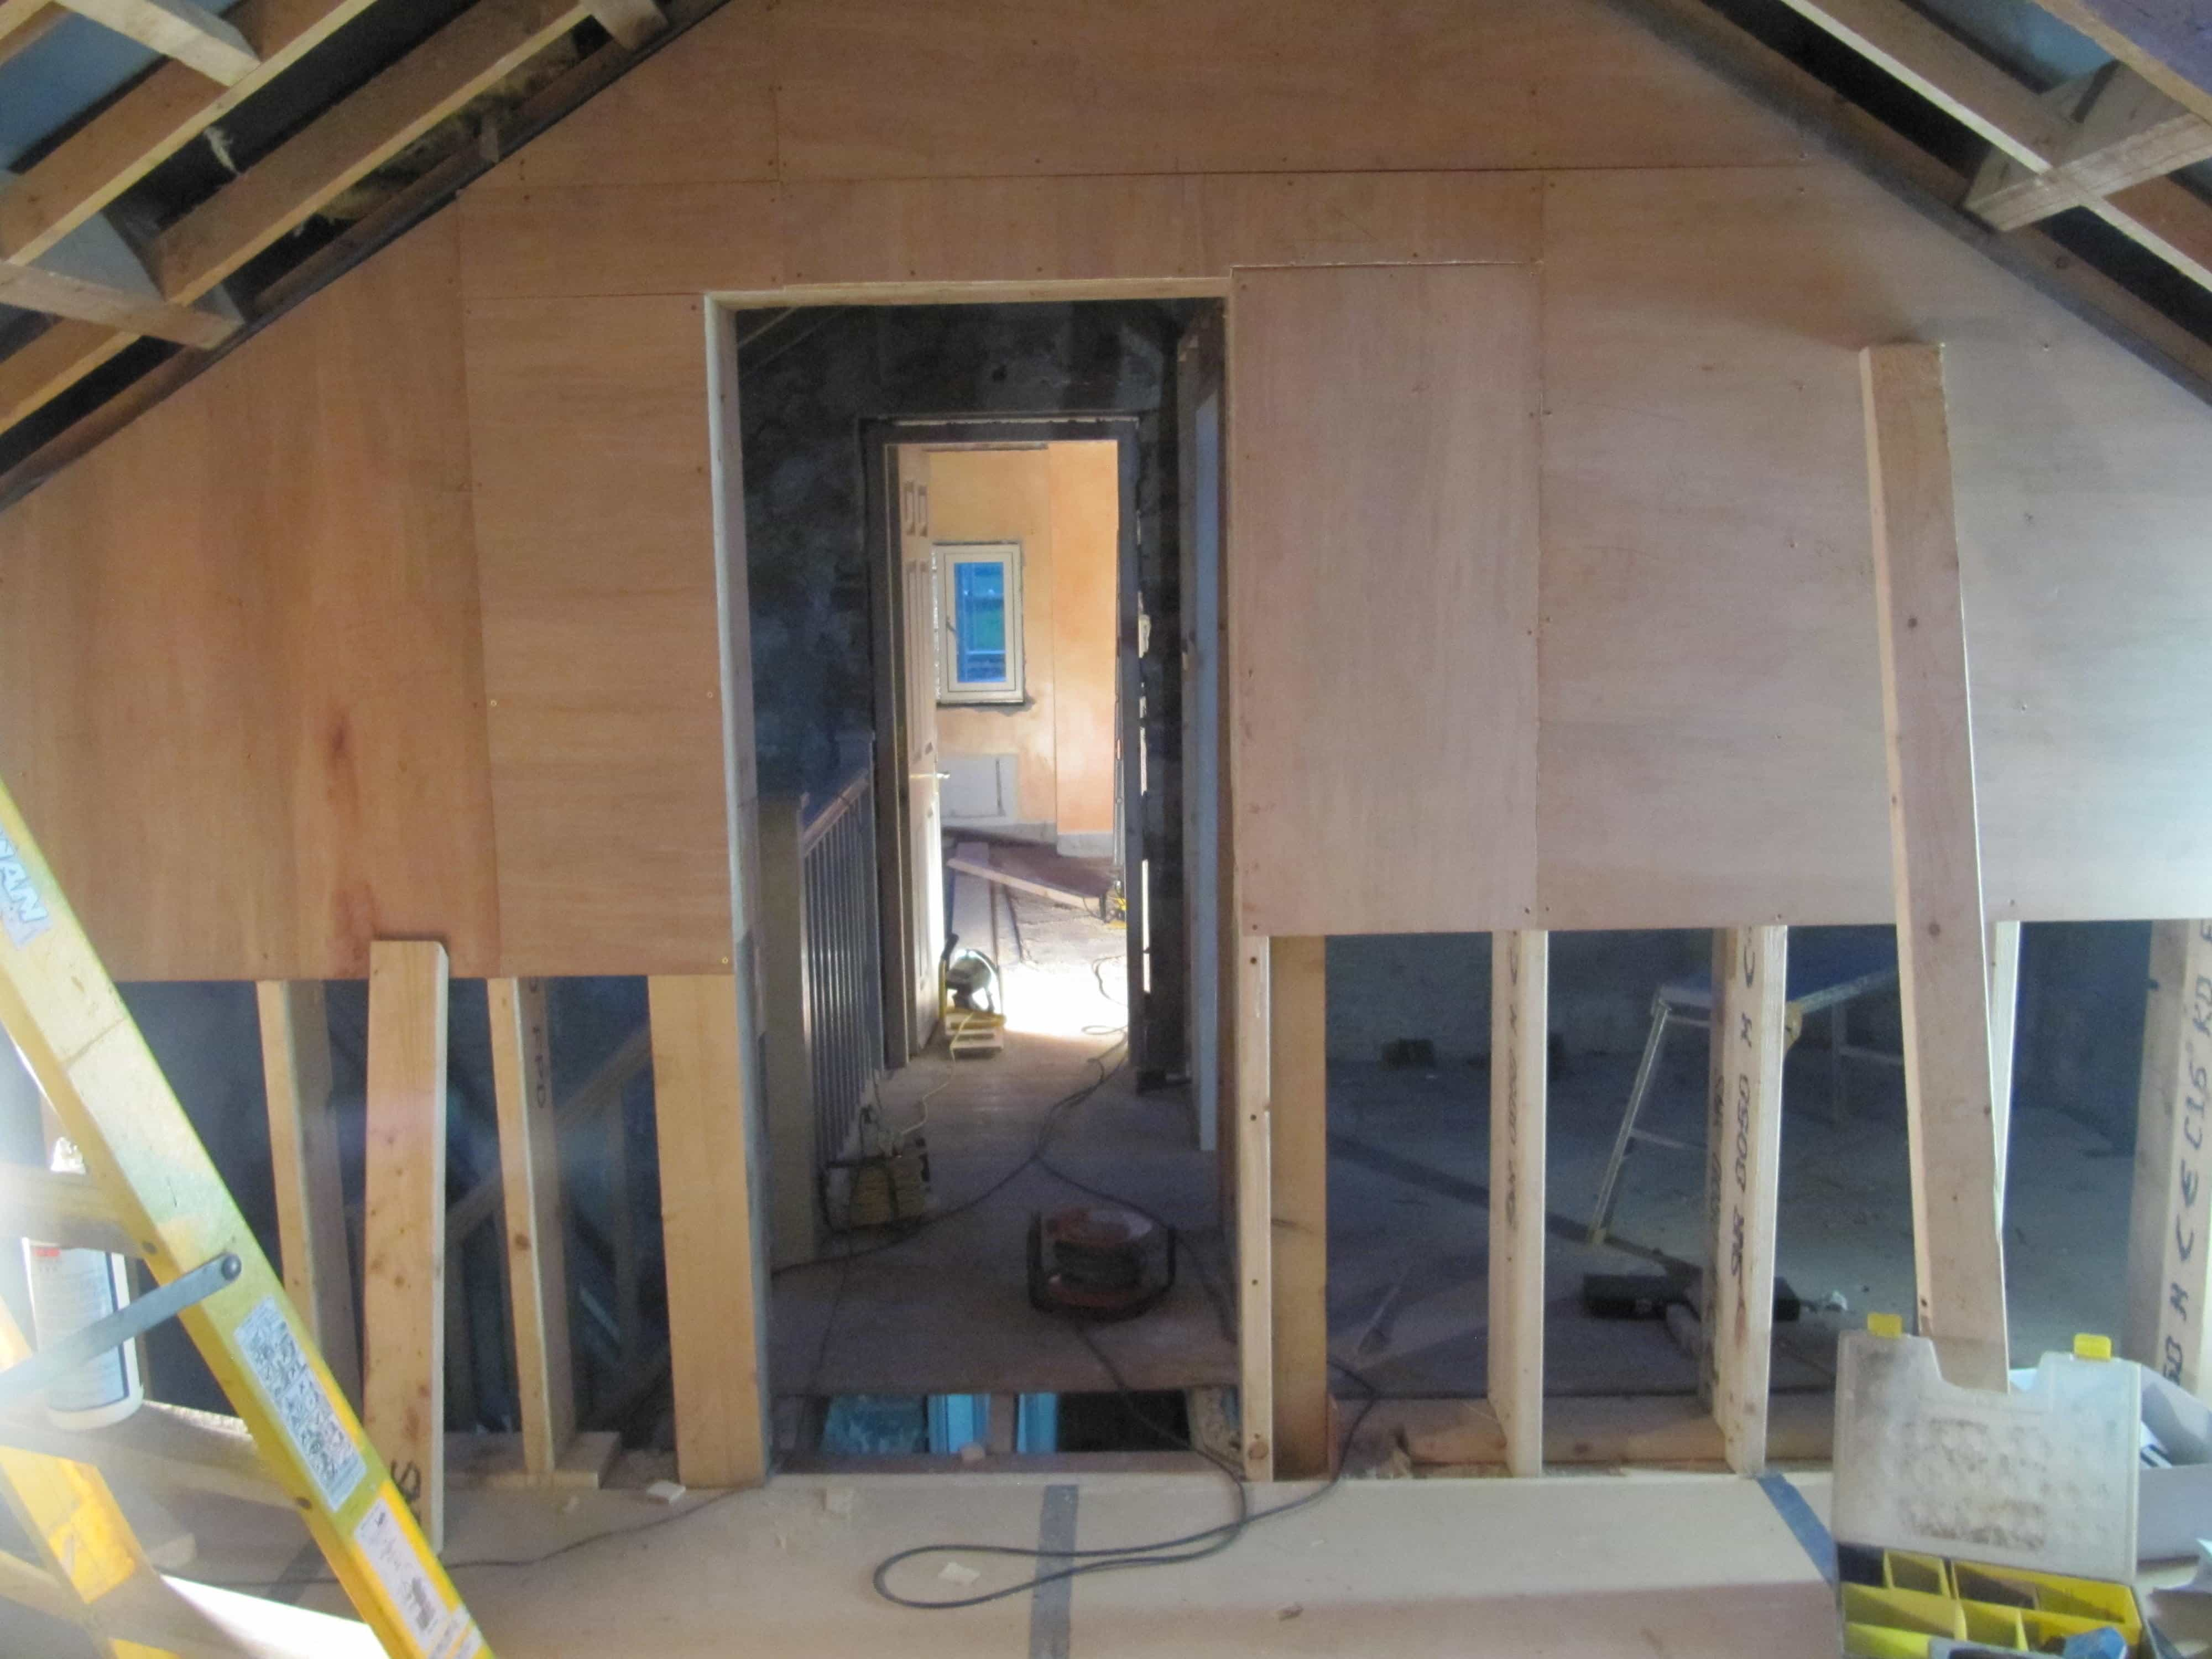 Cumberworth radical retrofit iwi internal wall insulation green doorways within roof trusses at cumberworth radical retrofit solutioingenieria Image collections